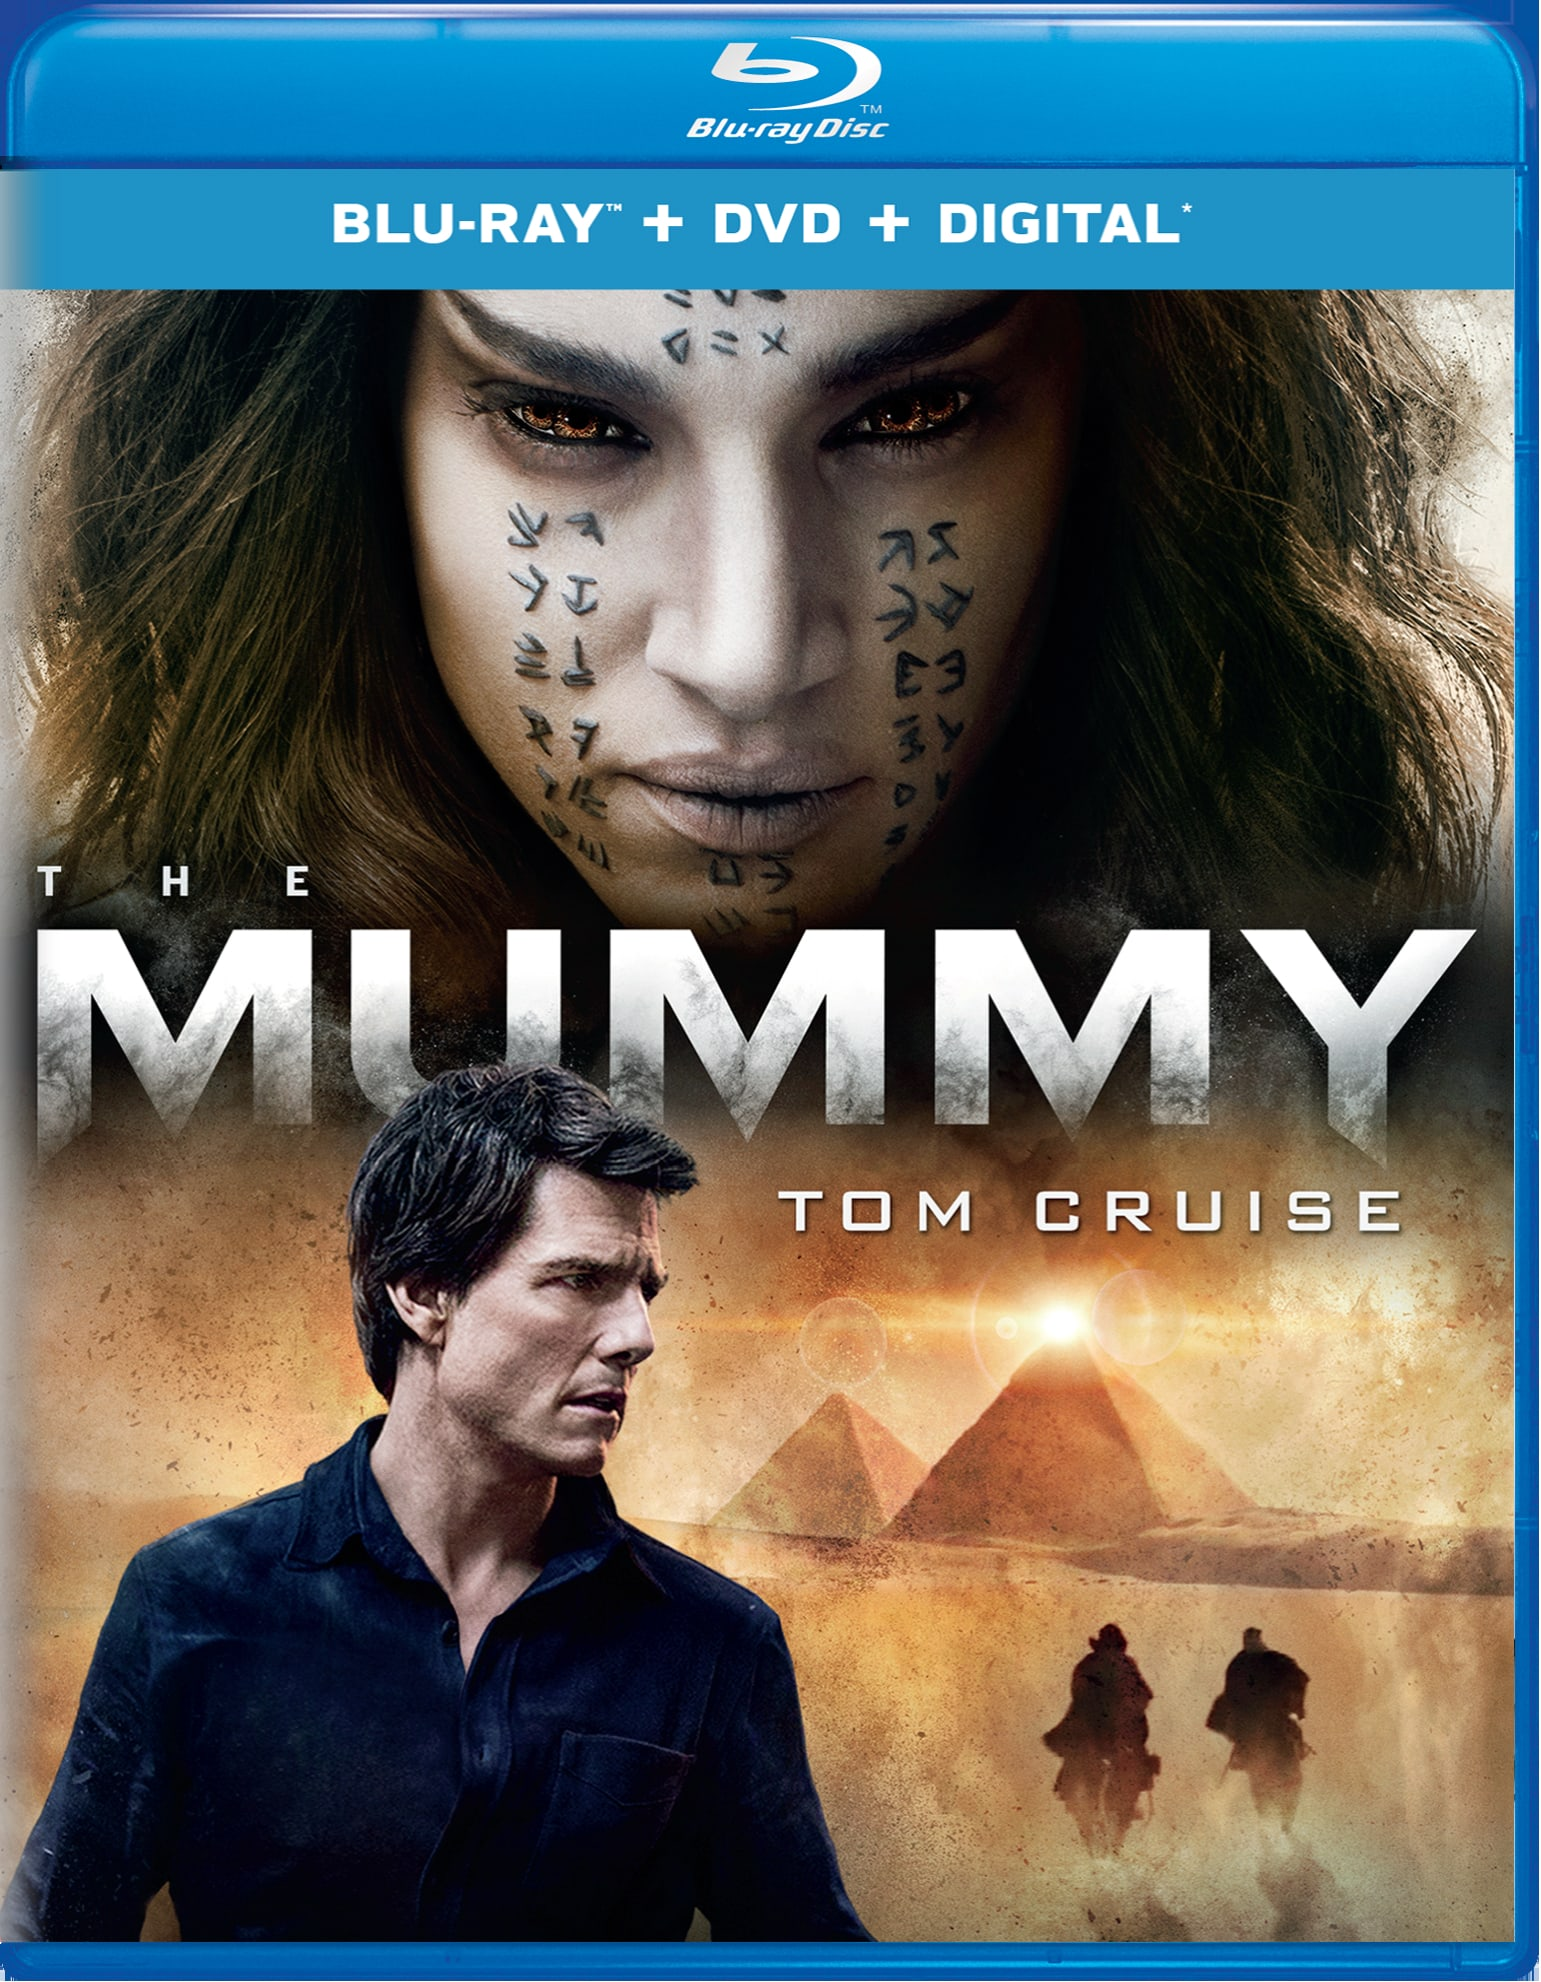 The Mummy (2017) (DVD + Digital) [Blu-ray]